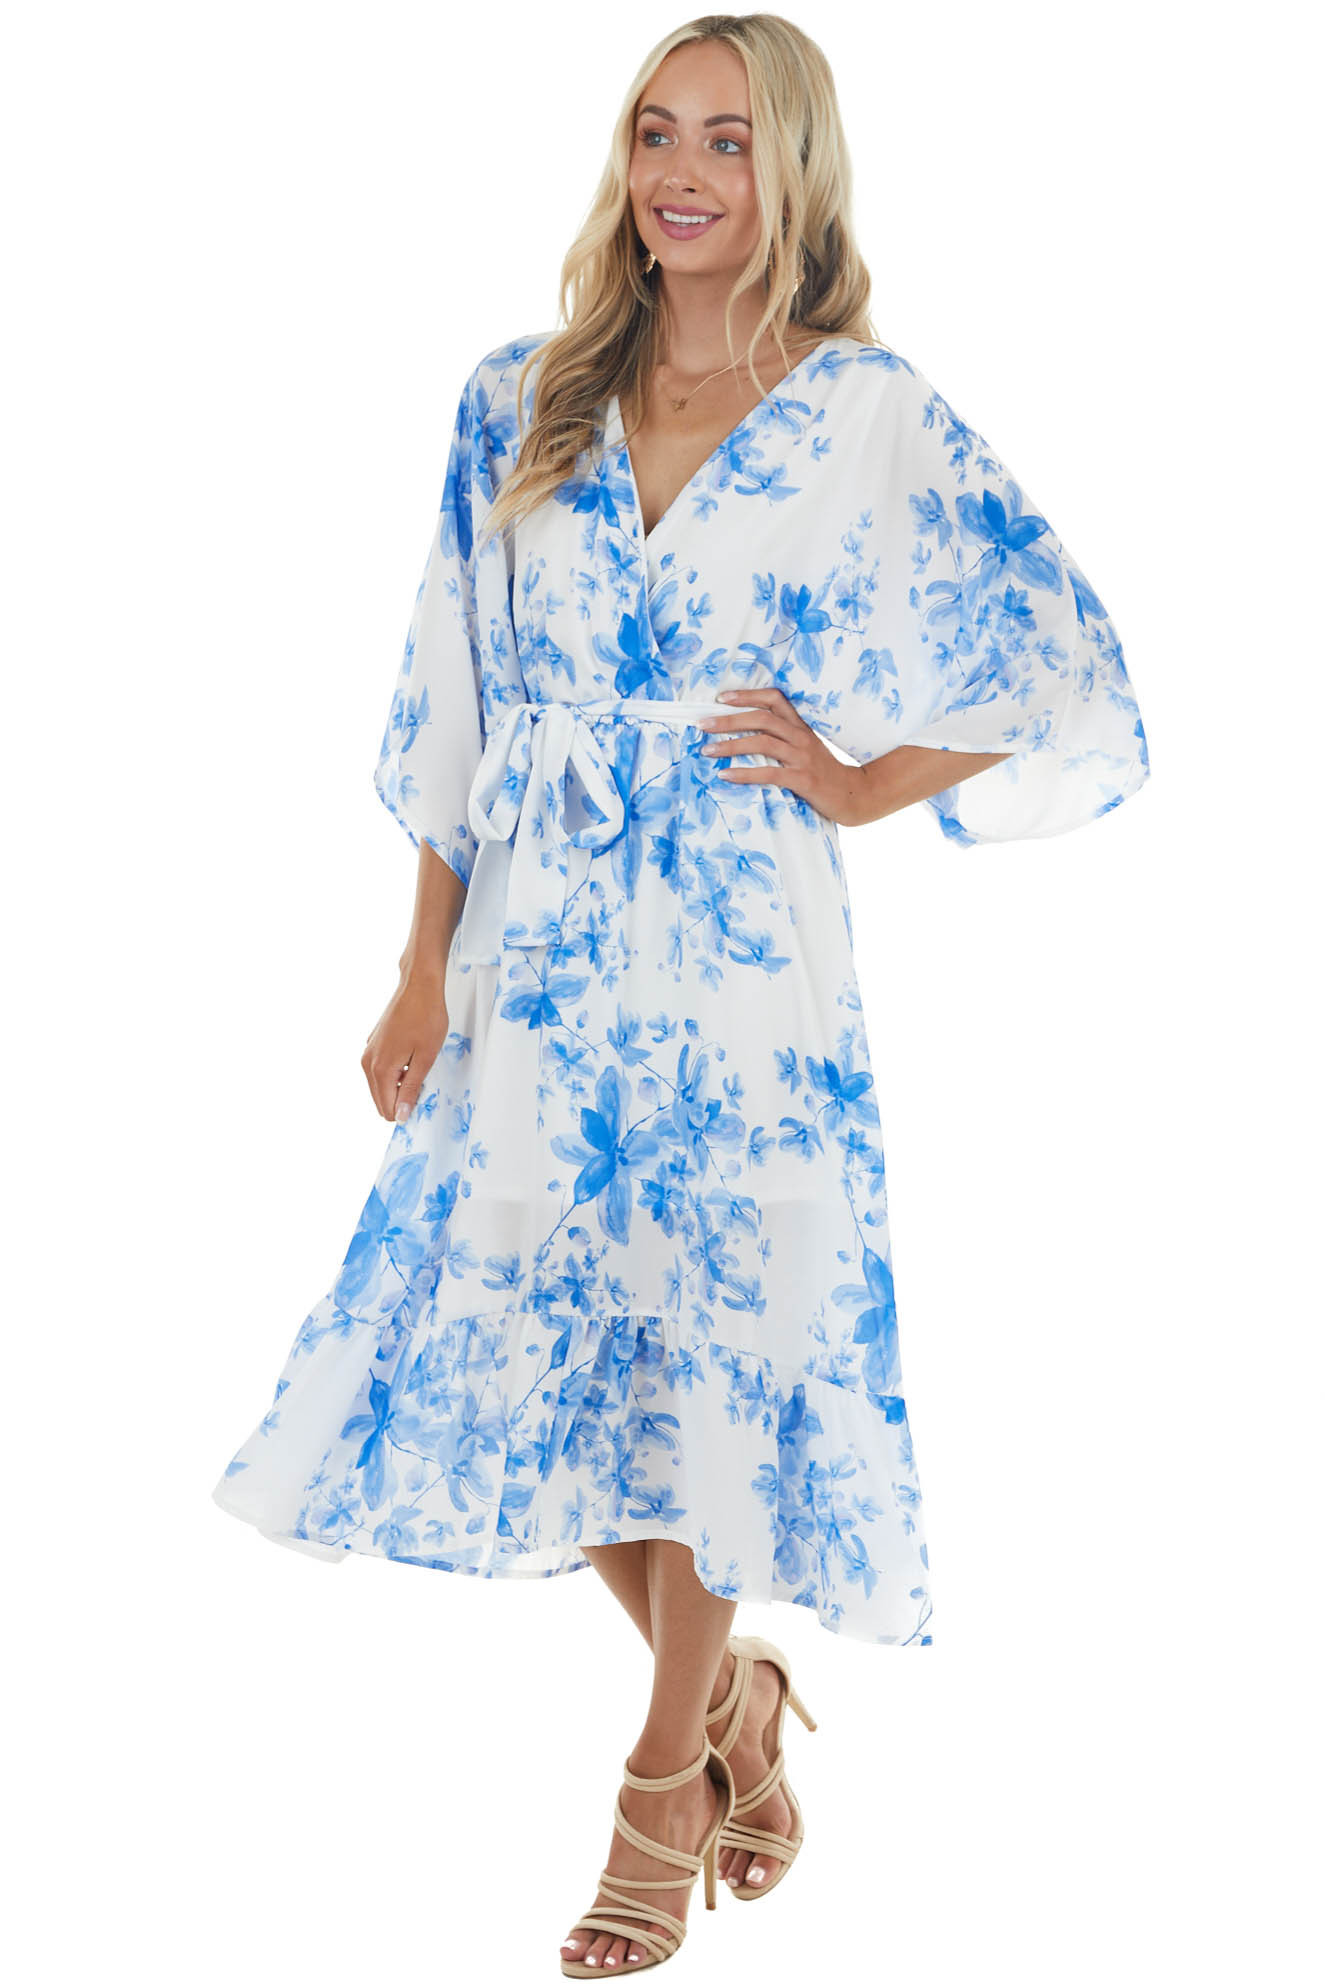 Ivory and Blue Floral Print Midi Dress with Overlay Detail